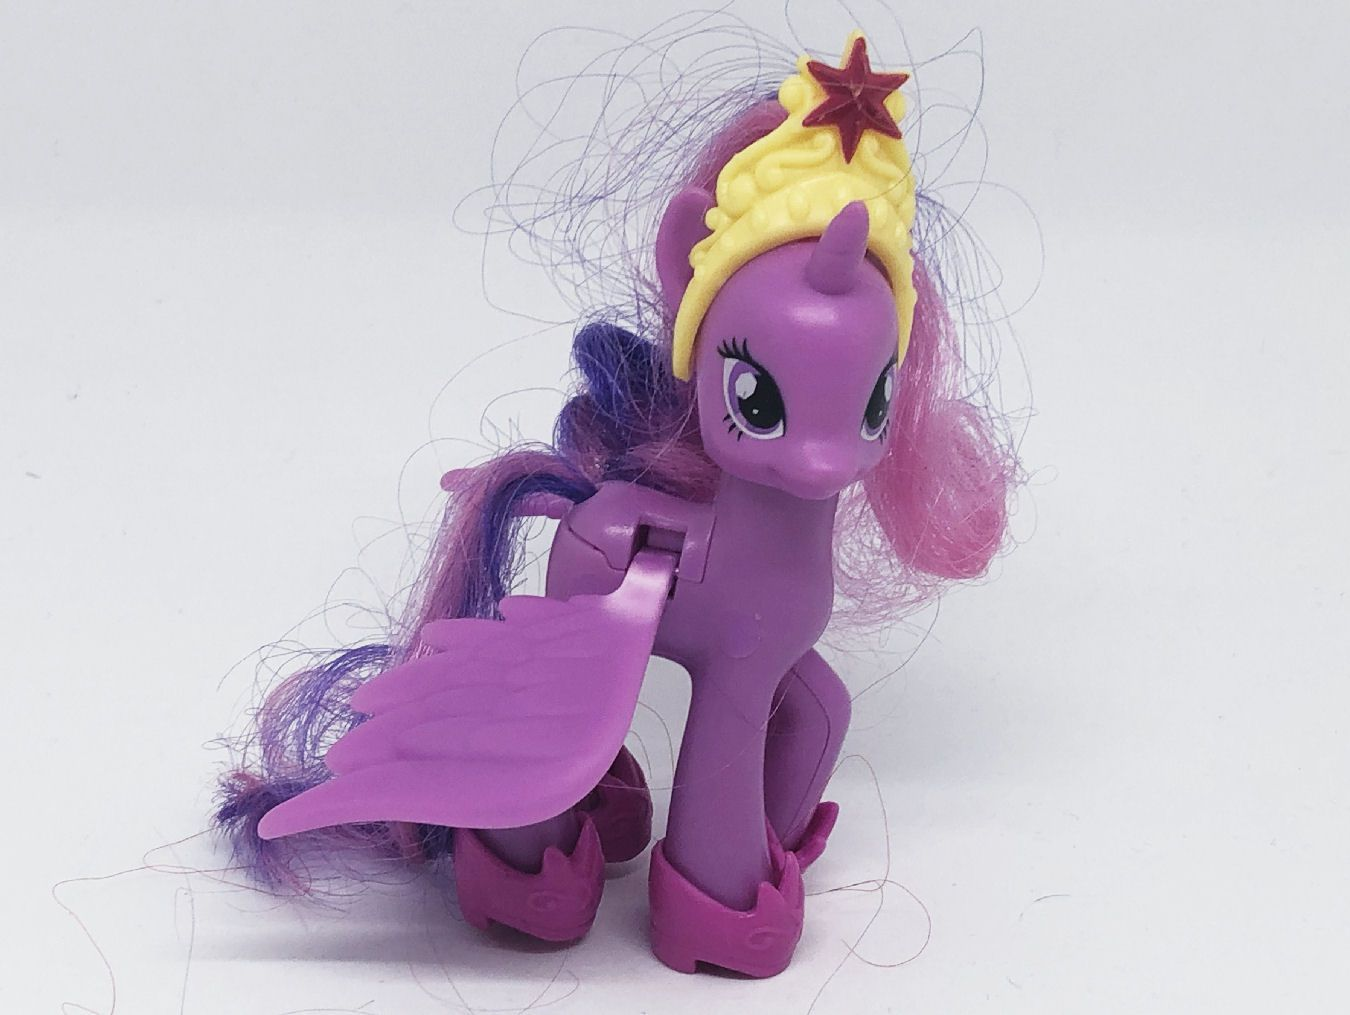 Twilight Sparkle (Princess - Crystal Empire)